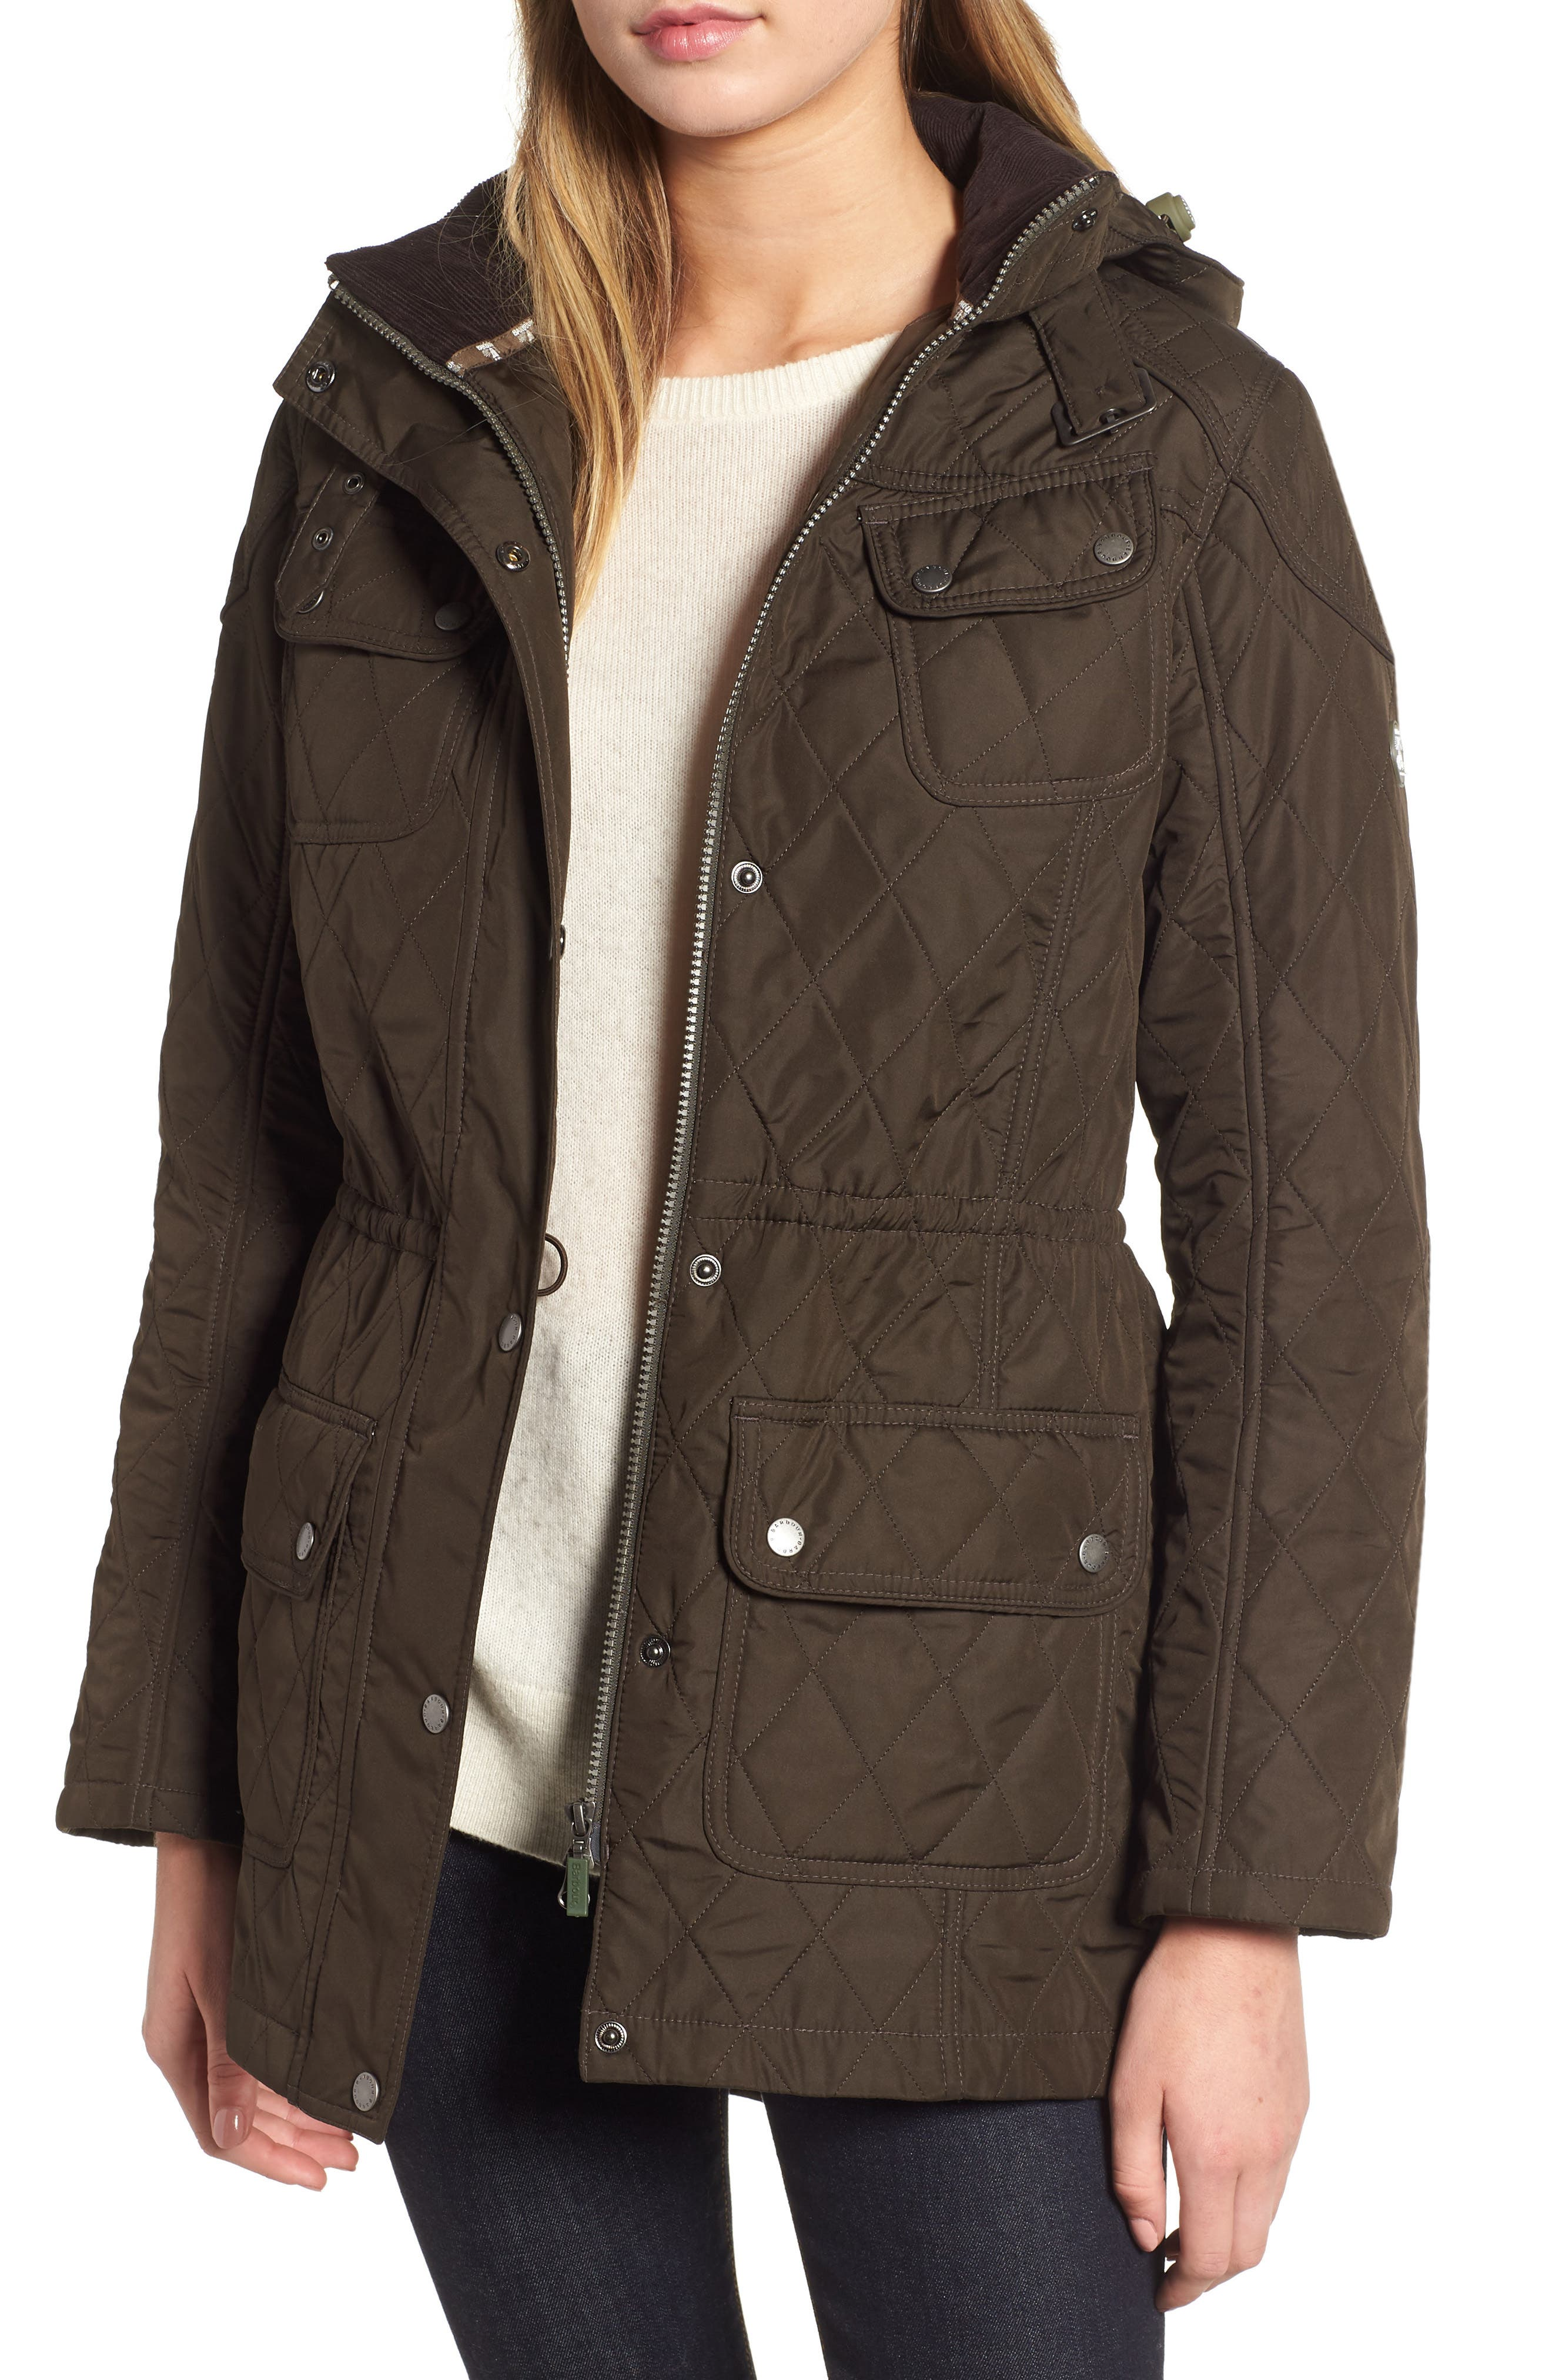 BARBOUR, 'Arrow' Quilted Anorak, Main thumbnail 1, color, 340